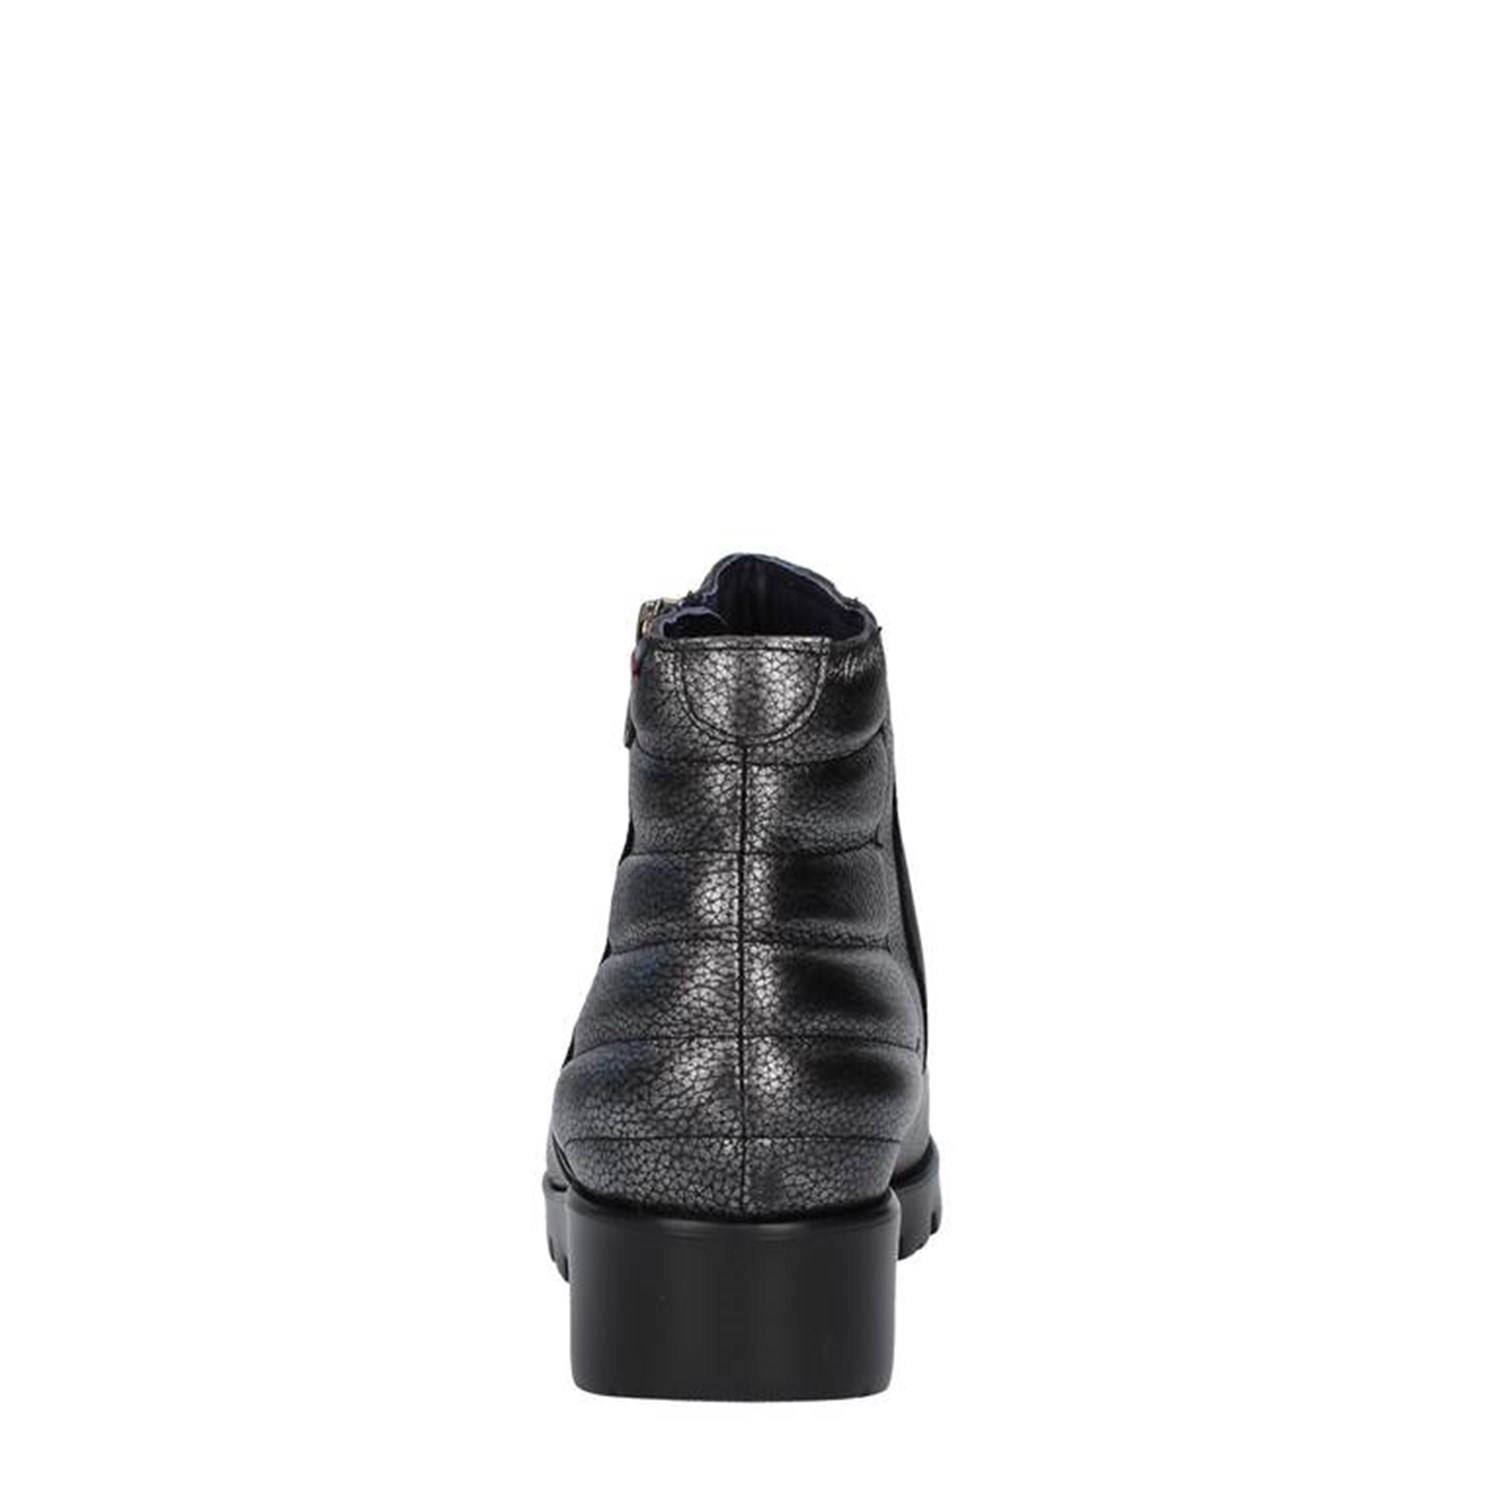 Callaghan Shoes Woman boots BLACK 89820